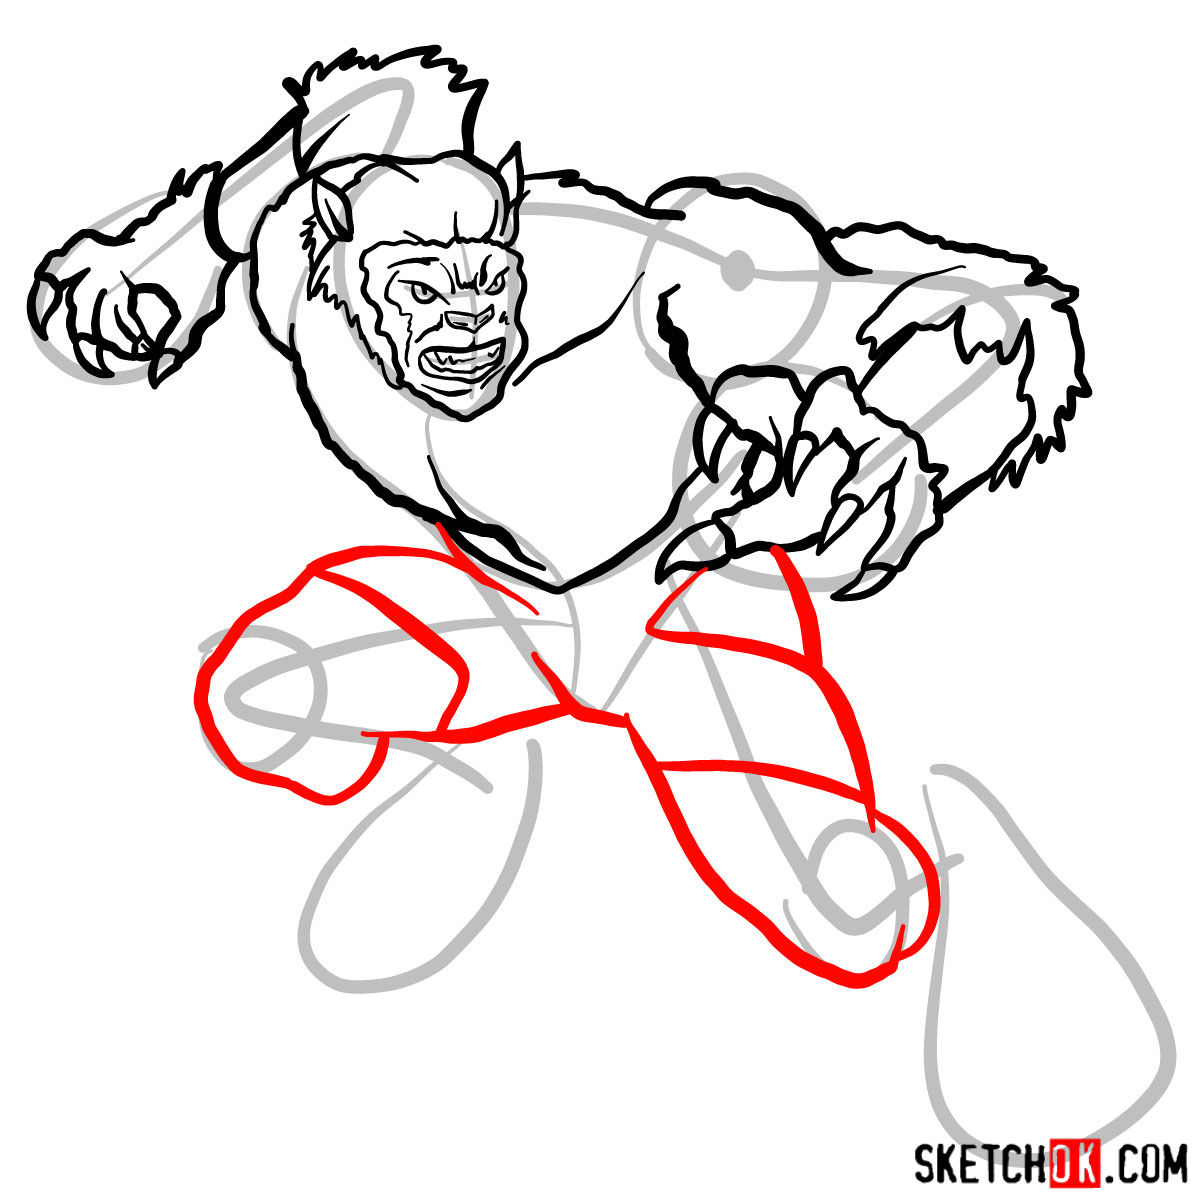 How to draw Beast (X-Men mutant) - step 11